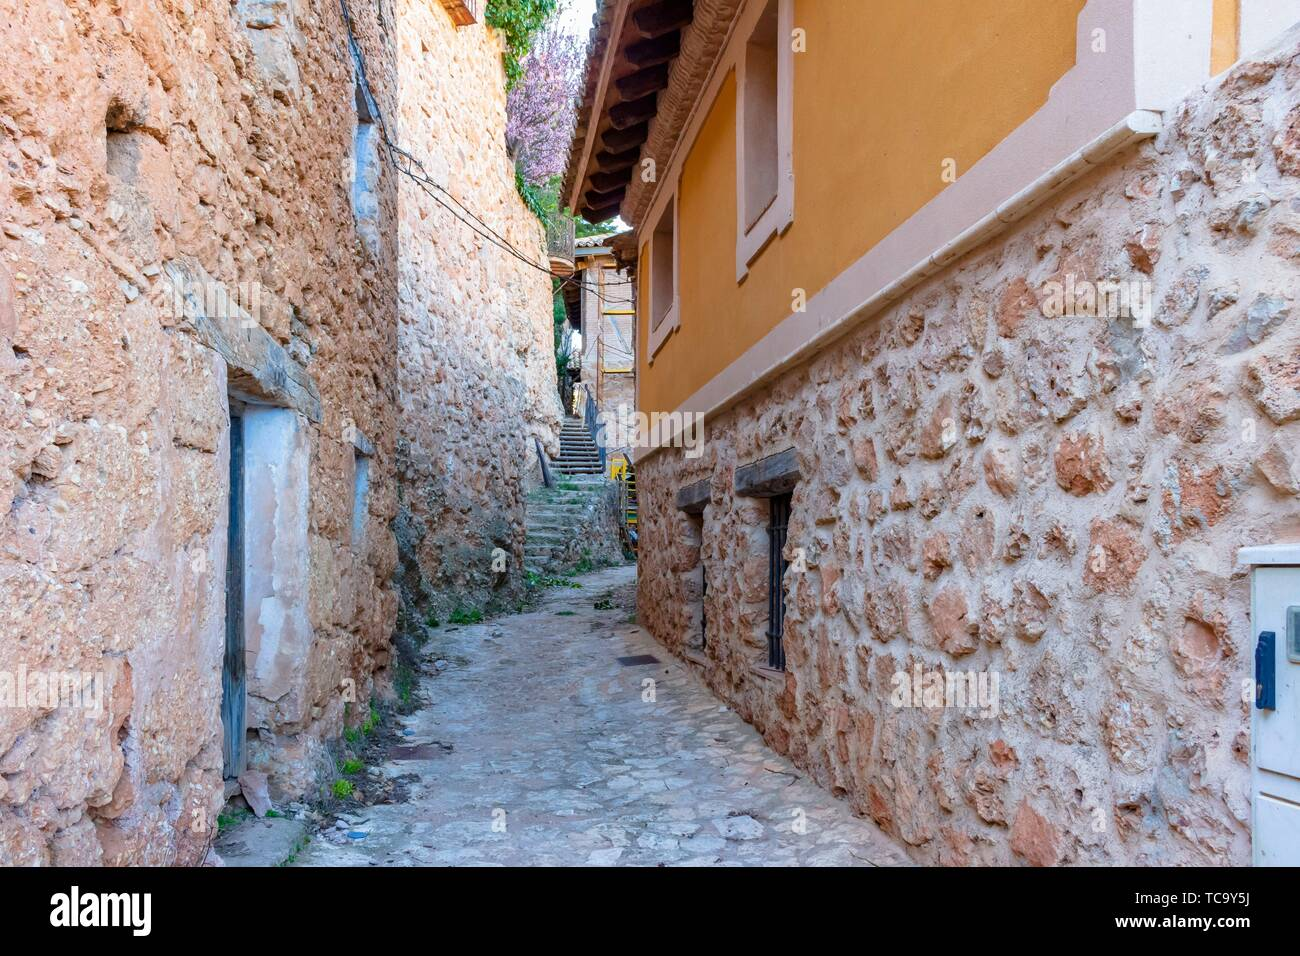 View of one of the streets of the historical core of Somaén. - Stock Image